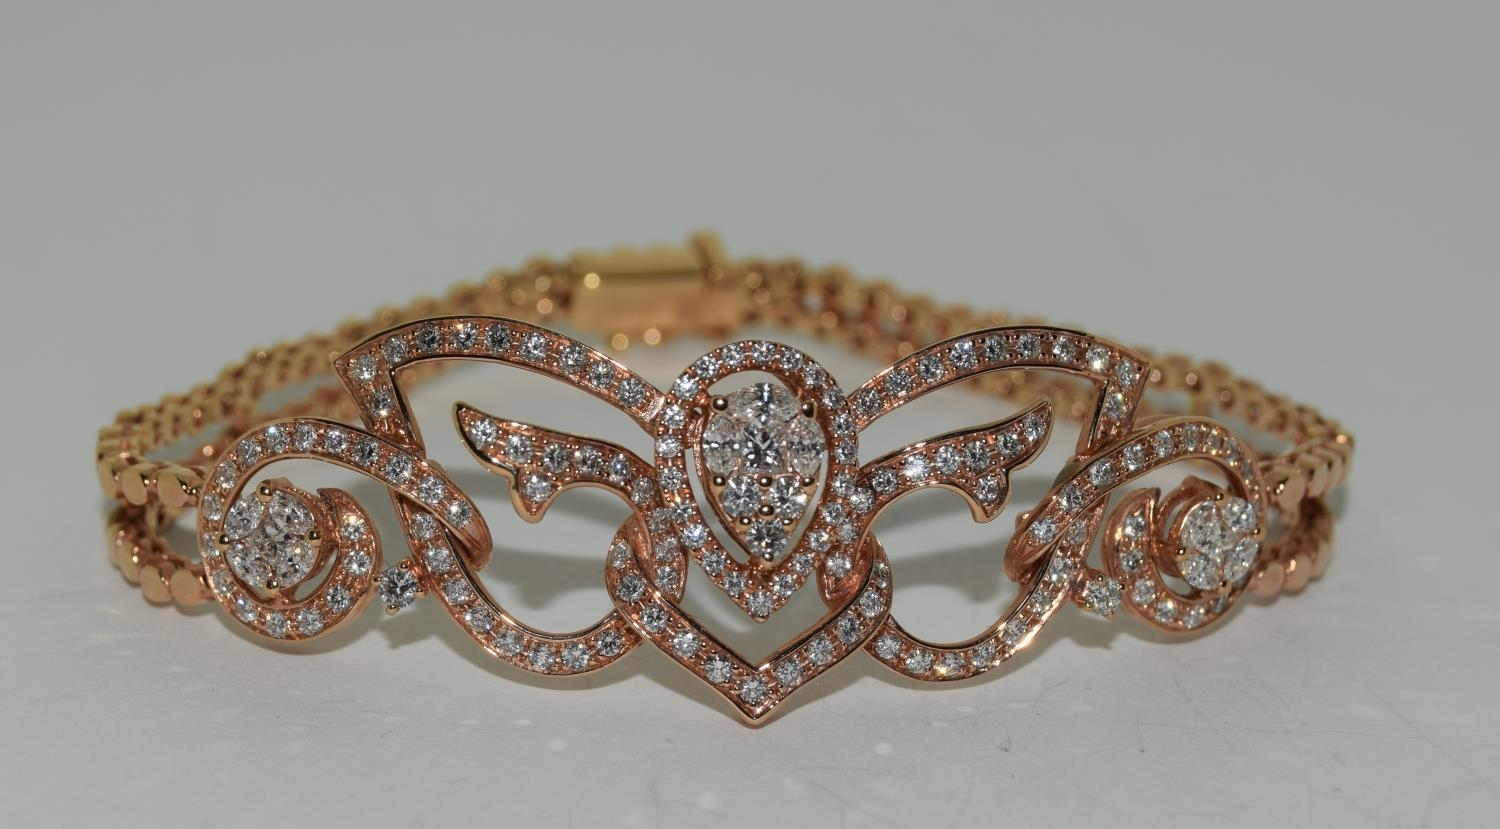 18ct pink gold ladies designer bracelet with approx 3.9ct diamonds 22gm - Image 2 of 6